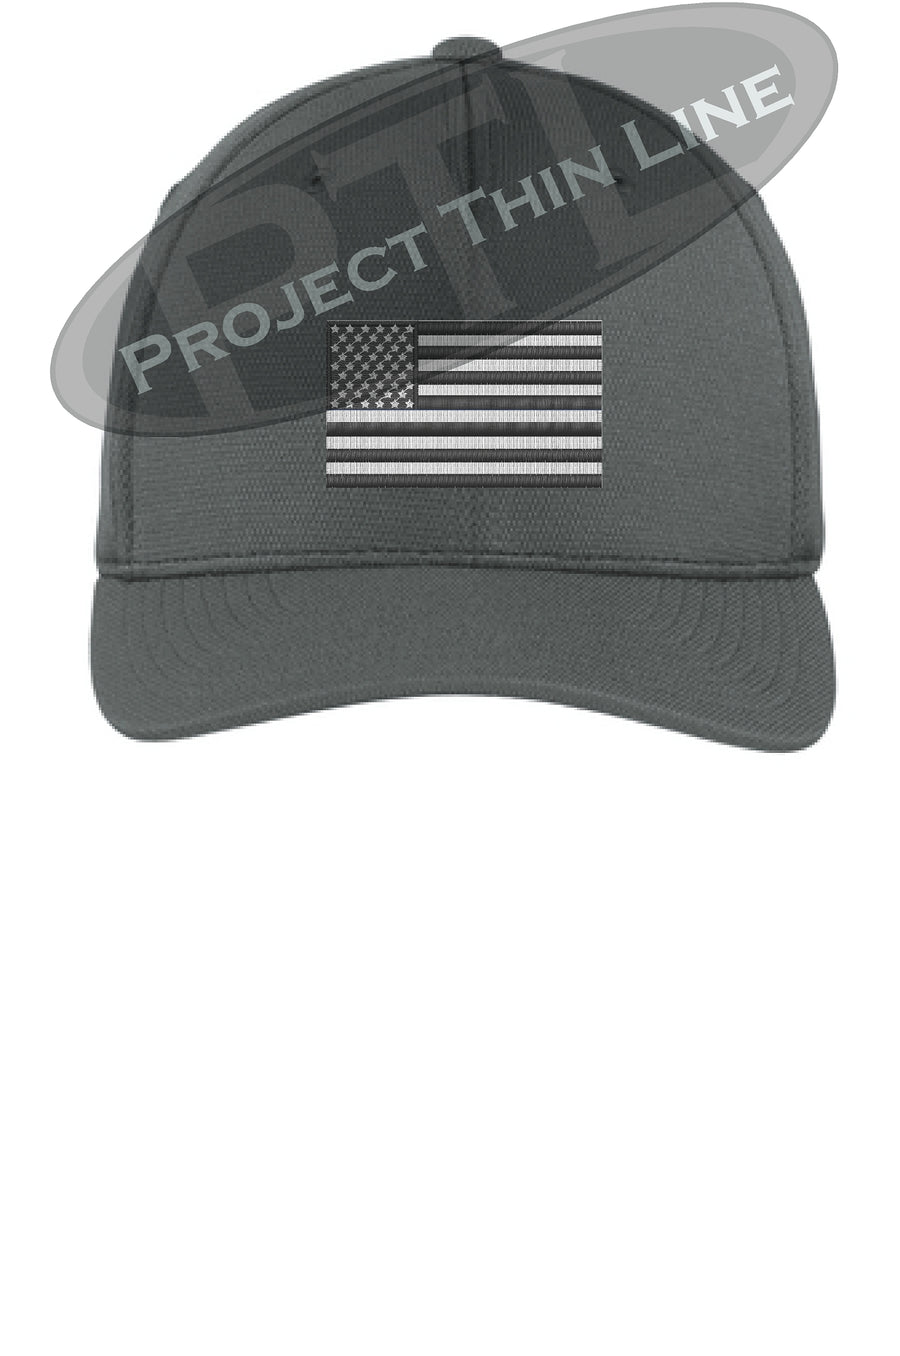 Black Embroidered Tactical / Subdued American Flag Flex Fit Fitted TRUCKER Hat